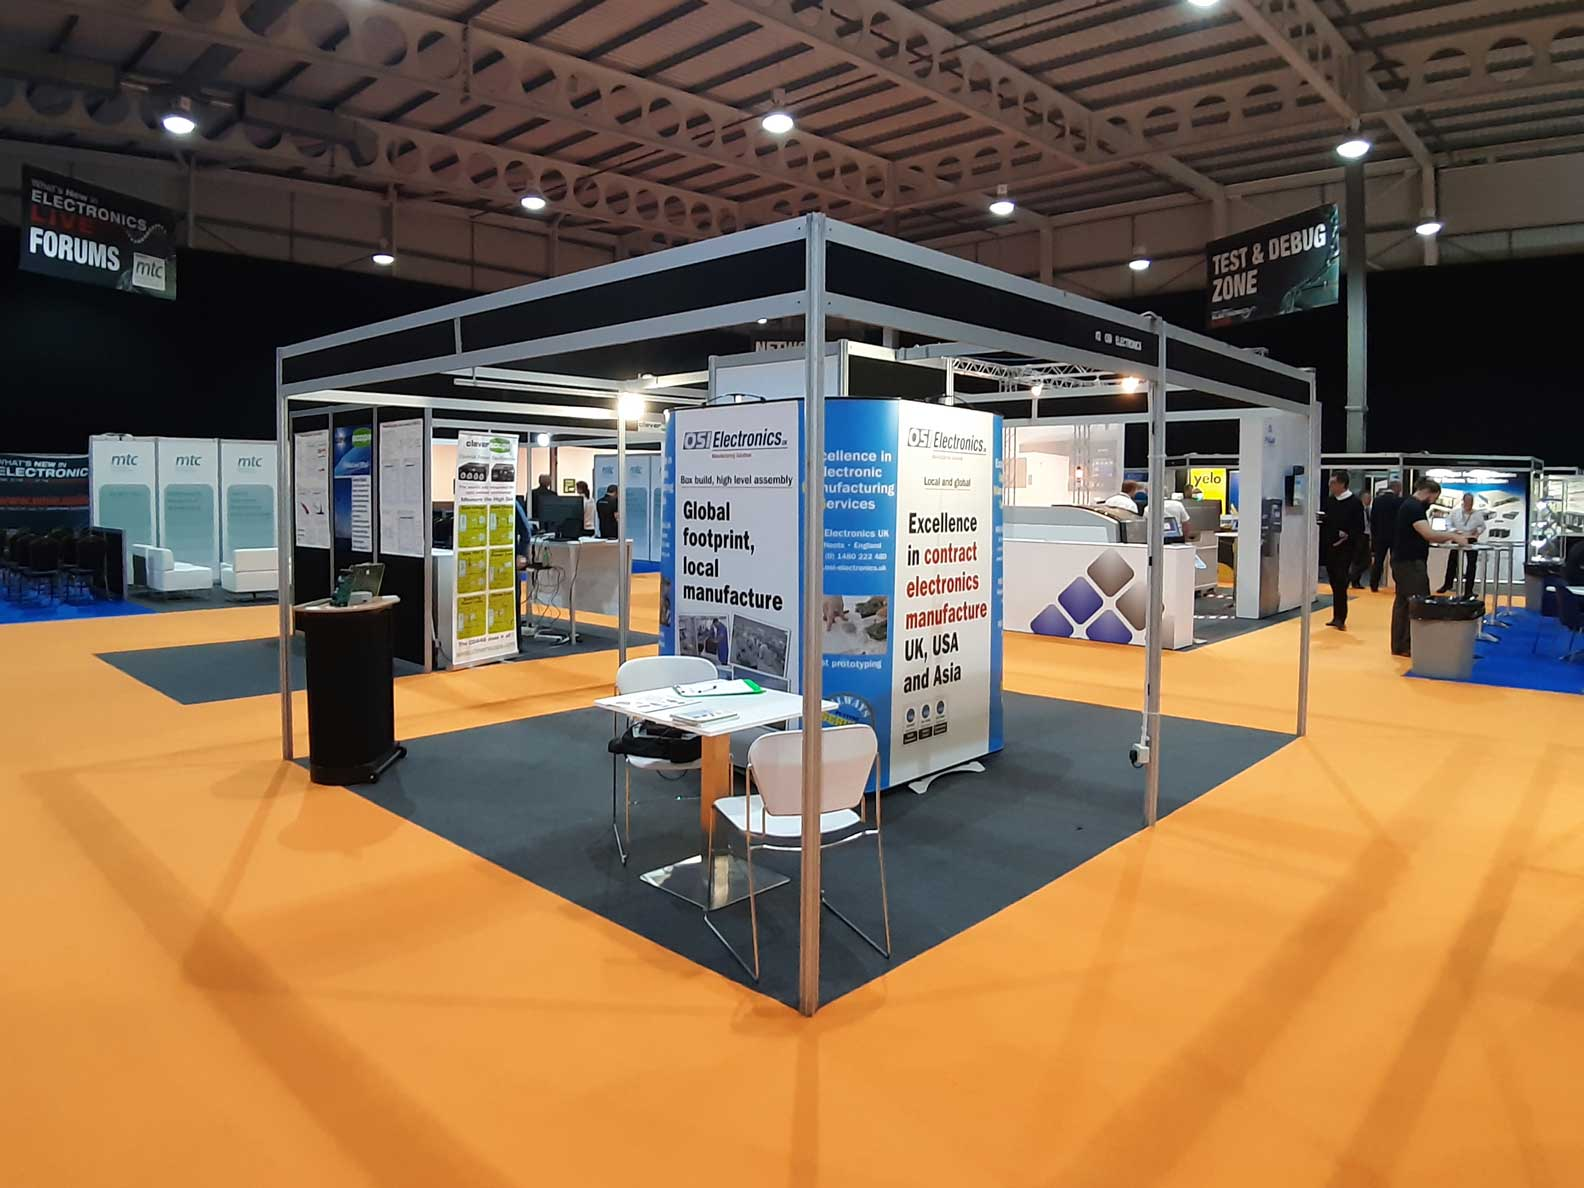 Waiting for WNIE 2019 to open – the OSI Electronics UK stand at What's New in Electronics Live / NAEC at Stoneleigh, Warwickshire, 18th and 19th September. Stand I12.